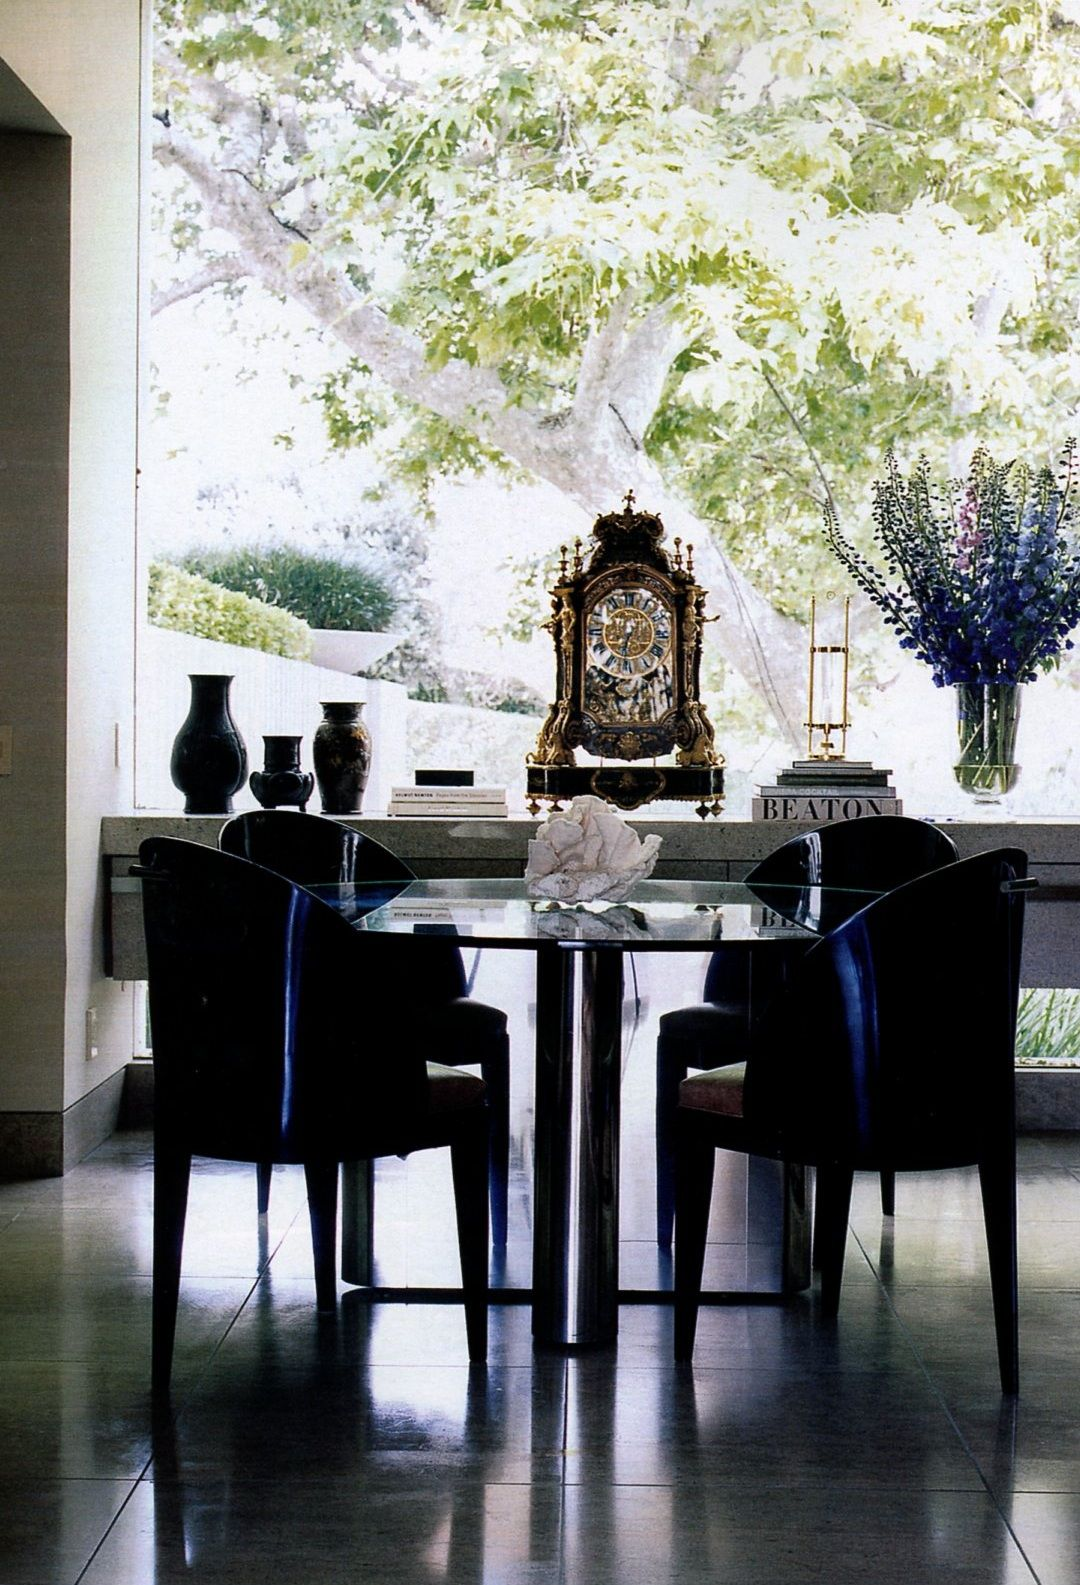 I LOVE THE MIX OF THE LOUIS XIV GILT BRONZE CLOCK WITH HAMMOND KROLL CHAIRS  FROM